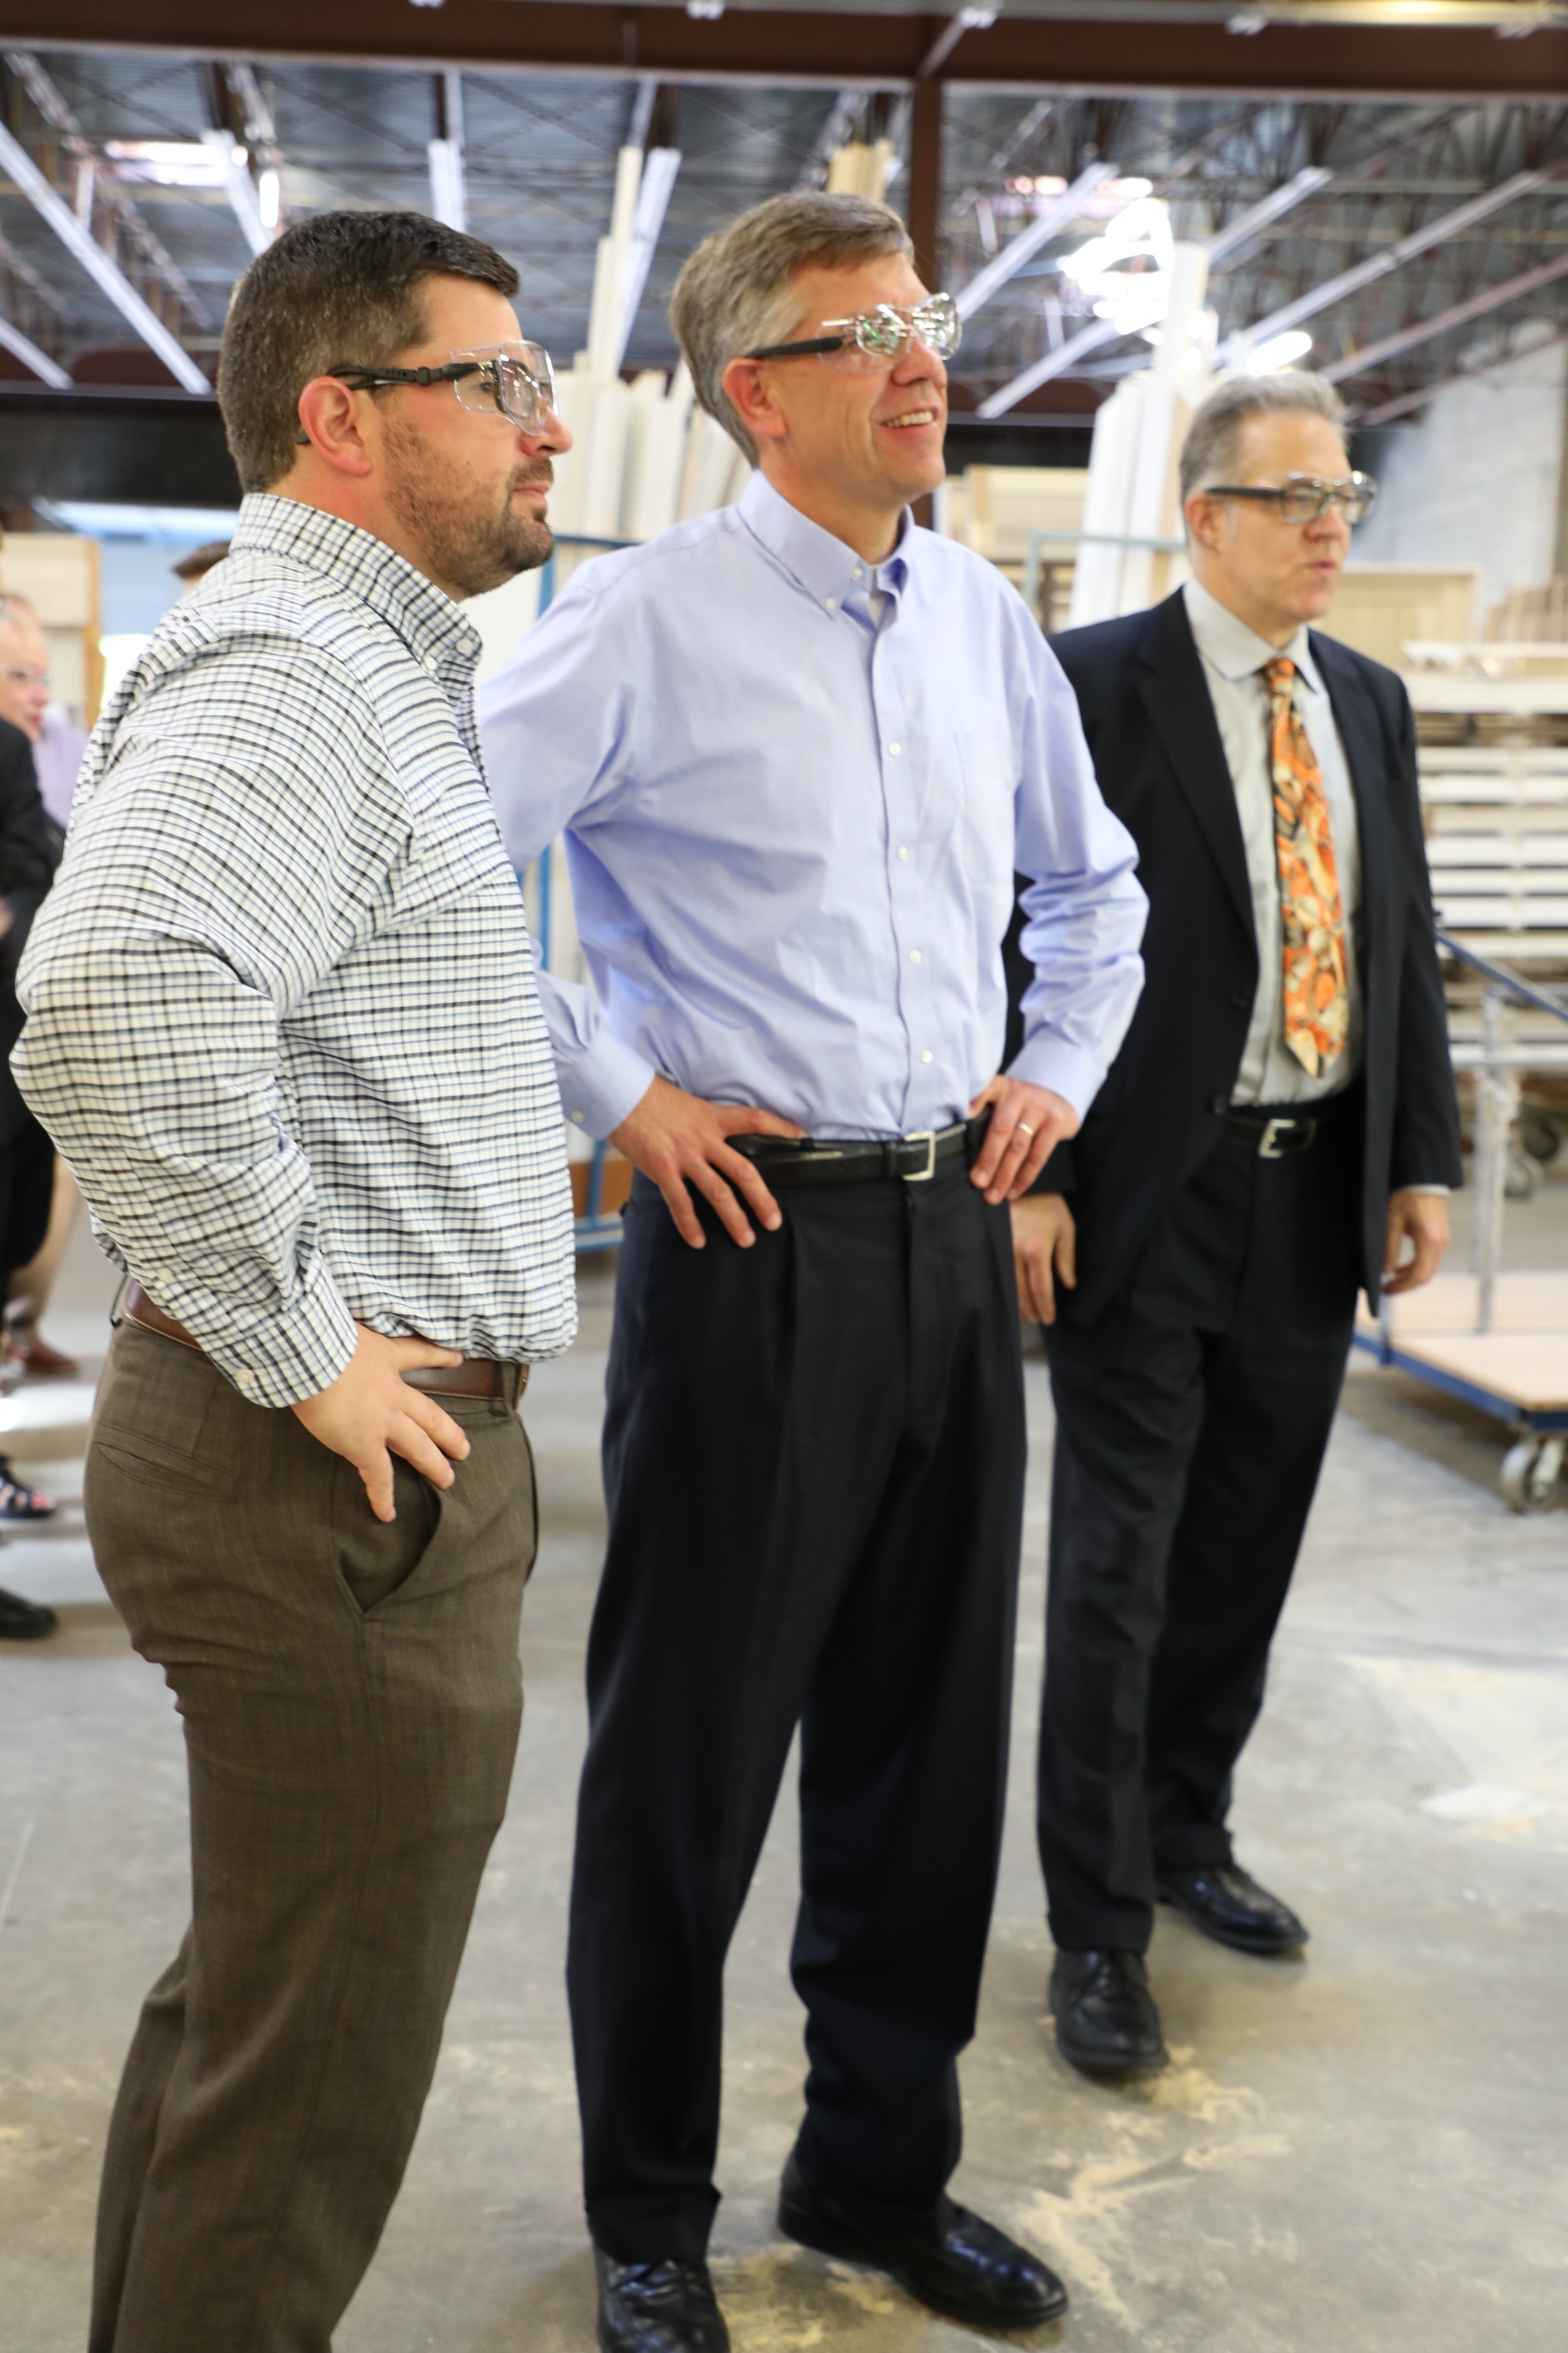 Housing First Minnesota board member, Charlie Bradburn, shows Congressman Paulsen (CD3-R) and David Siegel, Housing First Minnesota Executive Director, the ABC Millwork production facility.